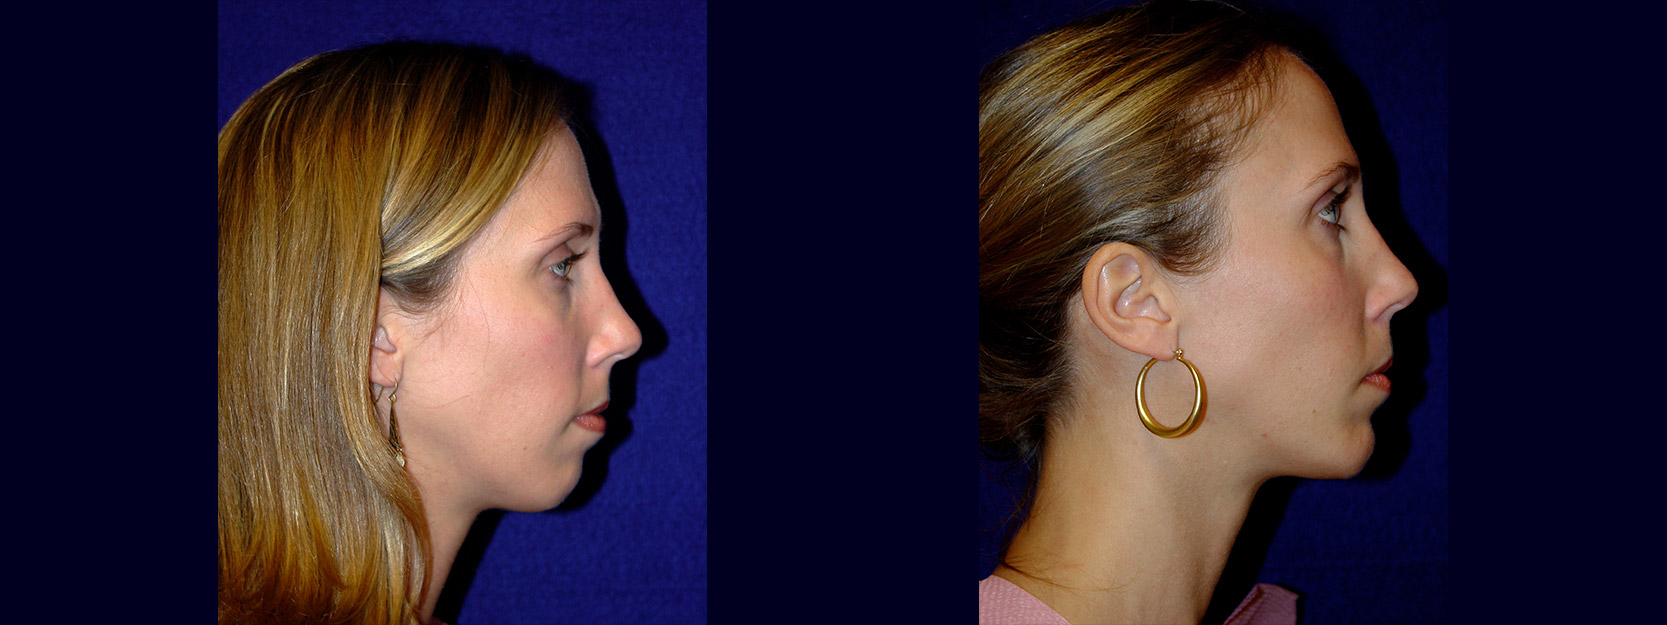 Right Profile View - Chin Implant